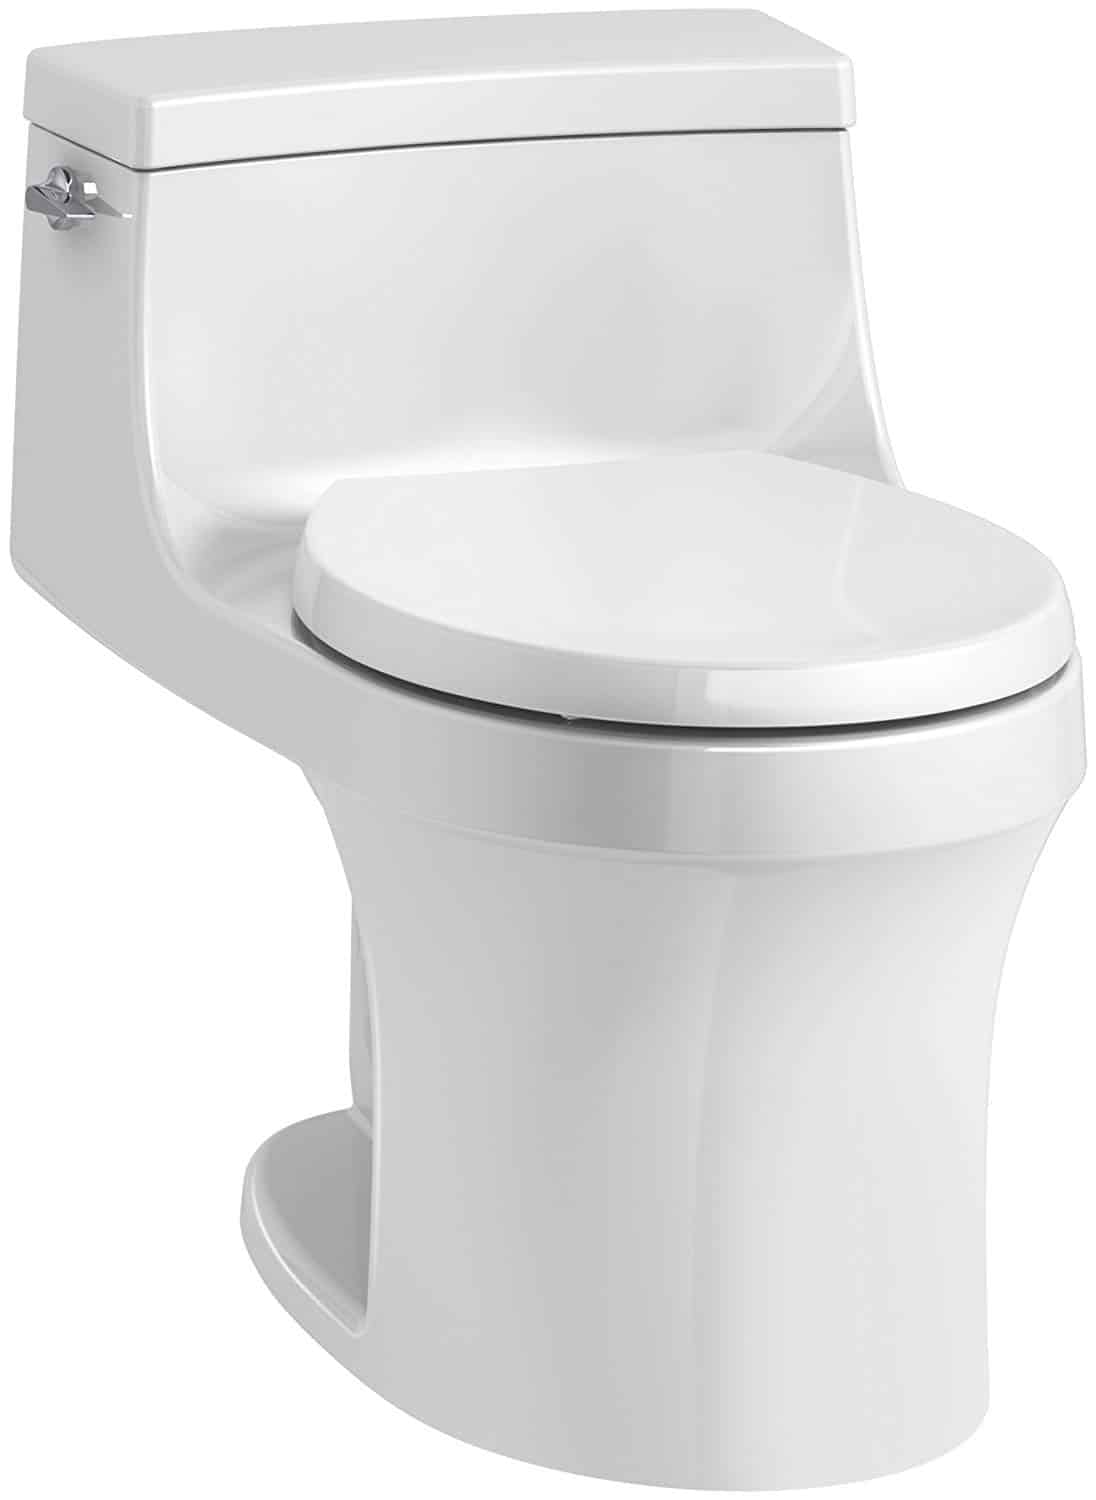 classic fit get cheap cheapest Kohler San Souci Toilet Review